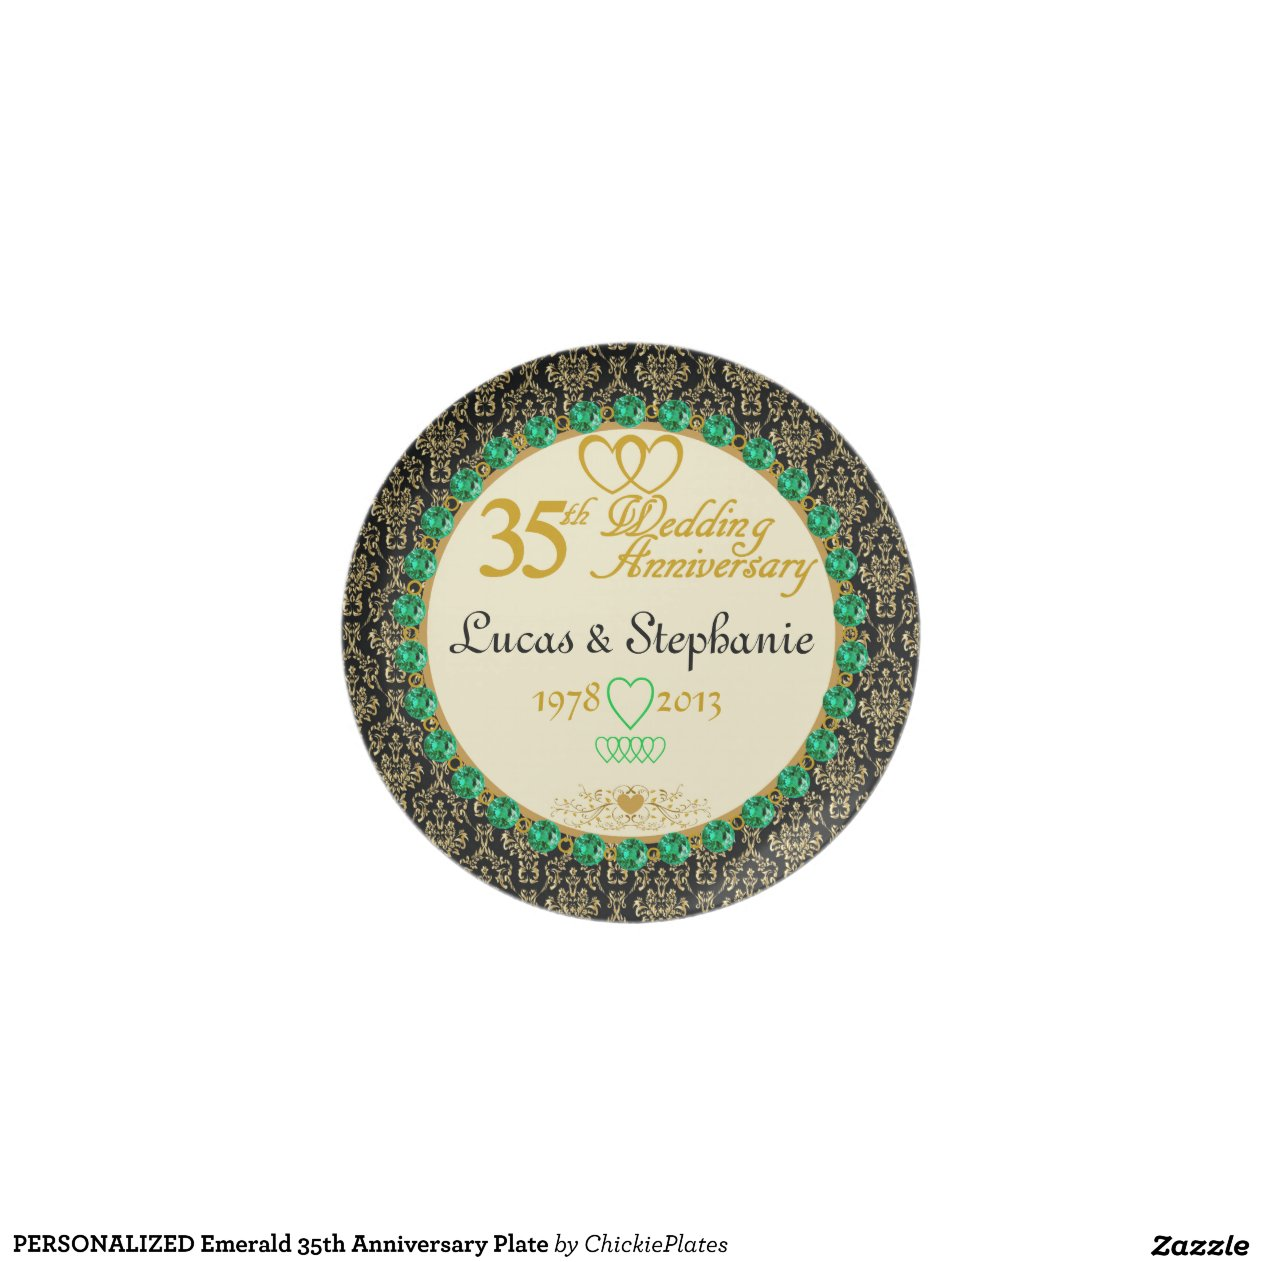 Emerald Wedding Anniversary Gifts: PERSONALIZED Emerald 35th Anniversary Plate